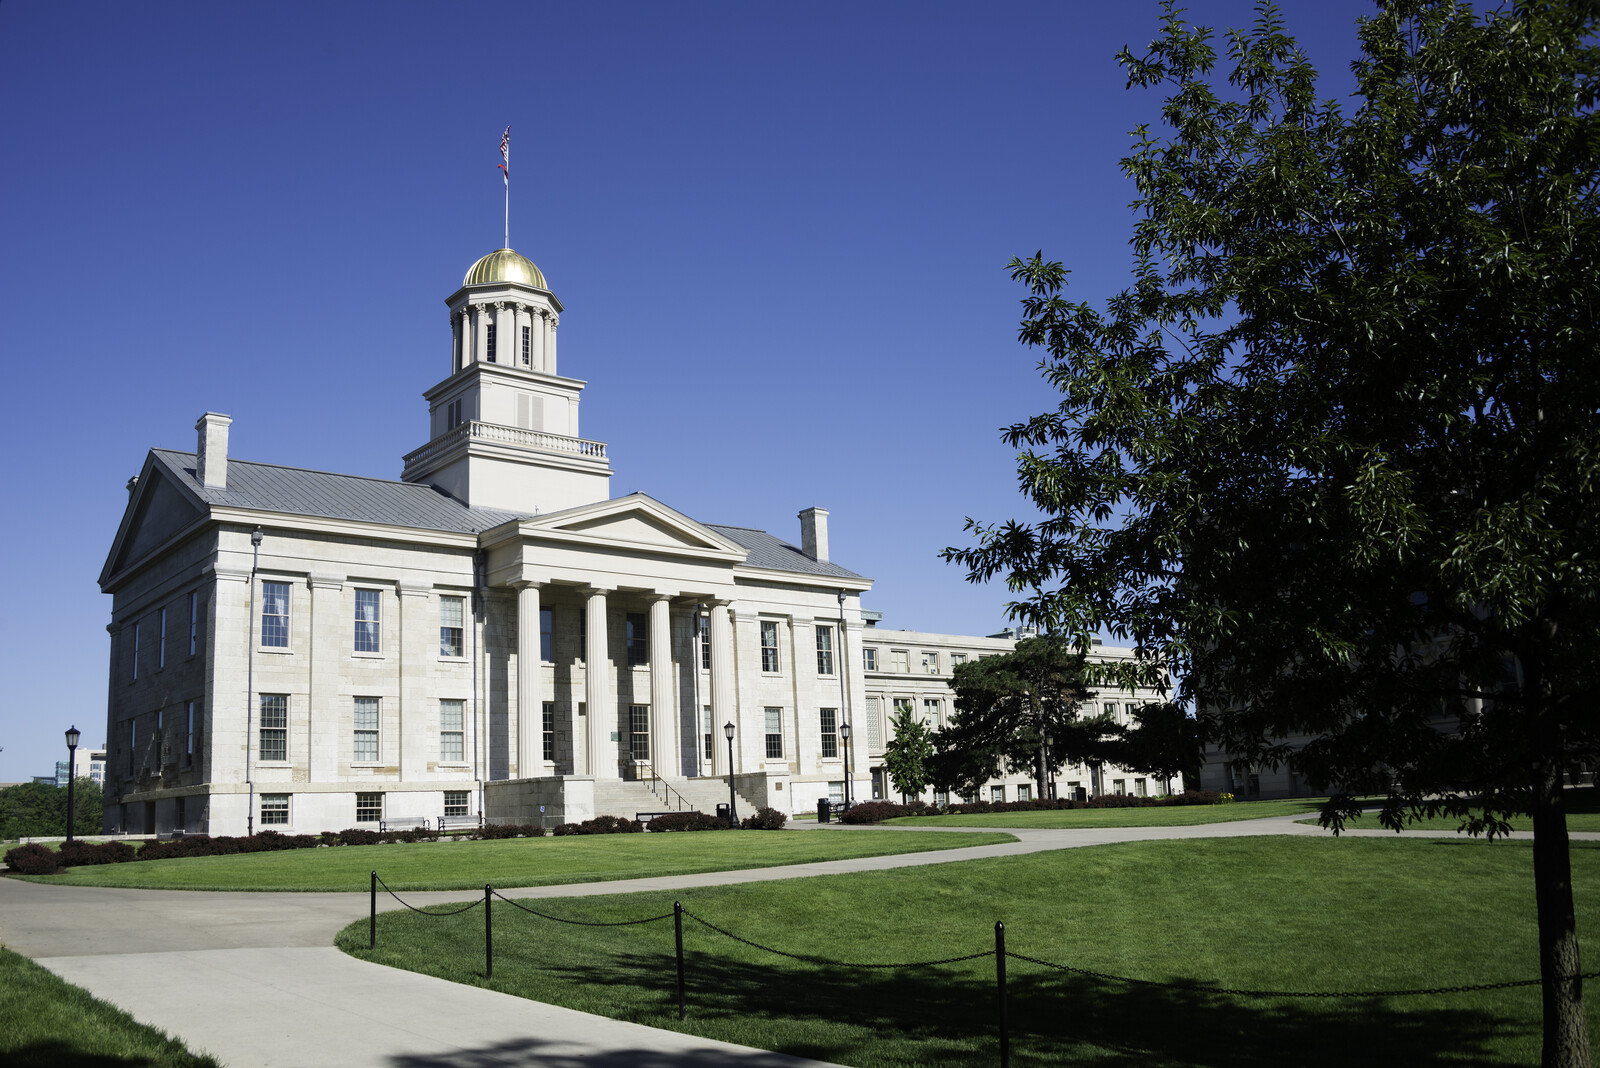 Historic state house with green grass and trees surrounding the building and blue skies on the university of Iowa campus in Iowa city